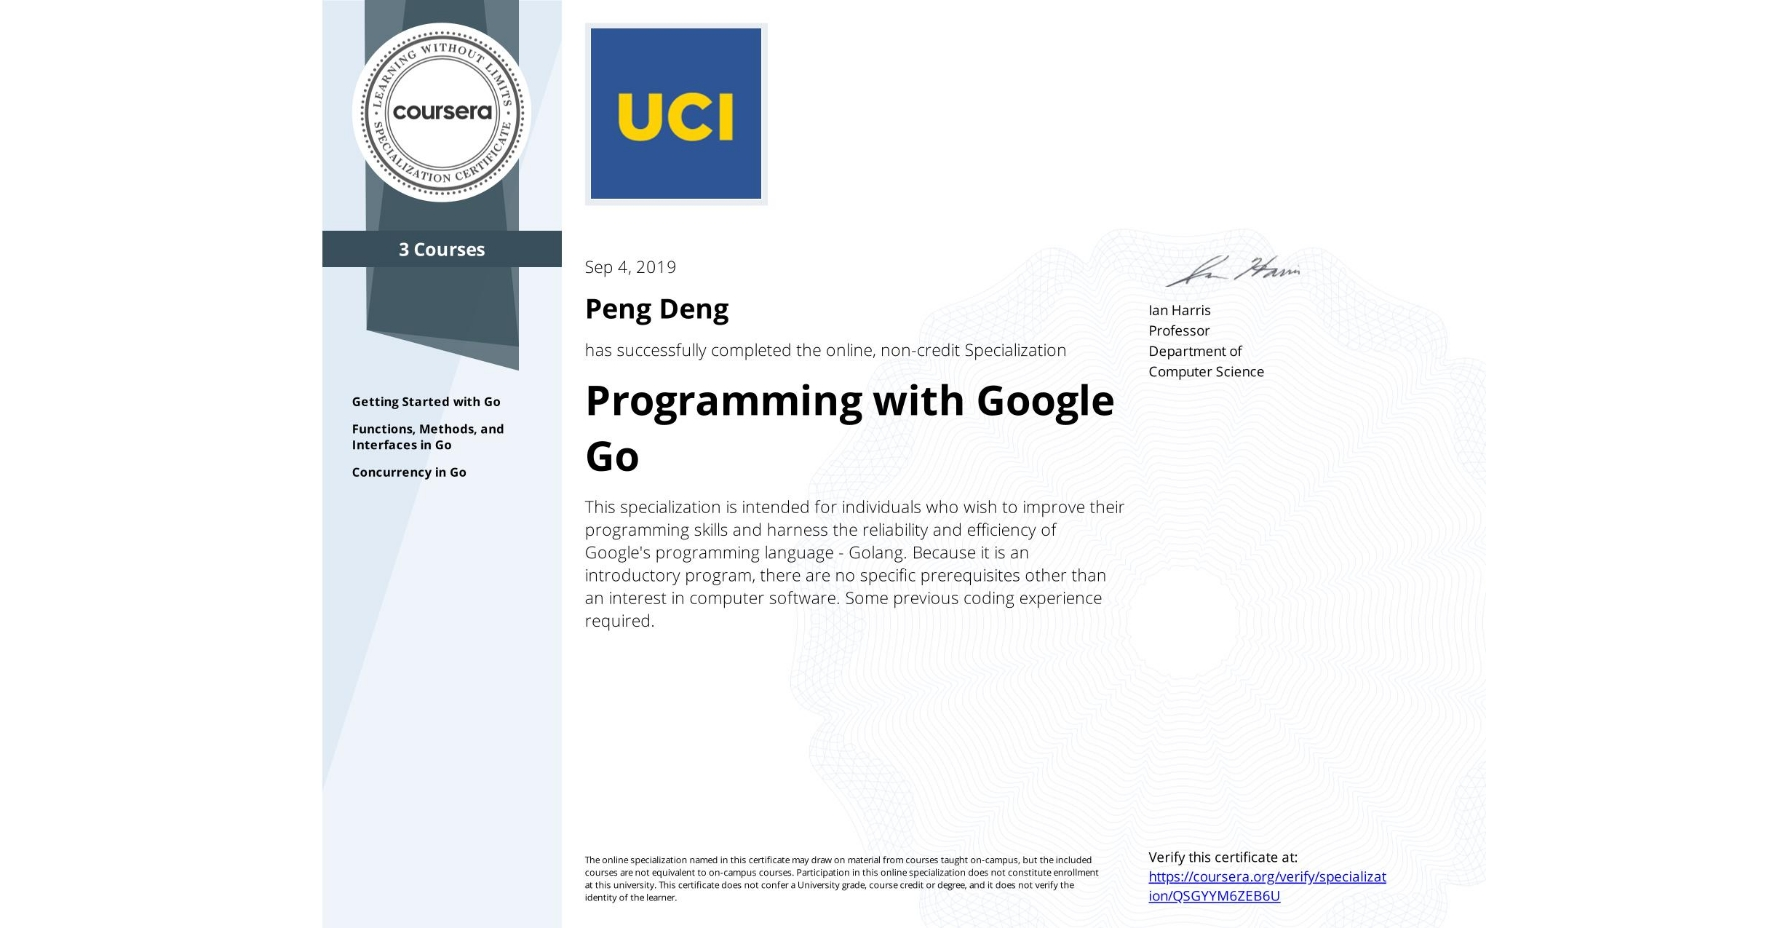 View certificate for Peng Deng, Programming with Google Go, offered through Coursera. This specialization is intended for individuals who wish to improve their programming skills and harness the reliability and efficiency of Google's programming language - Golang. Because it is an introductory program, there are no specific prerequisites other than an interest in computer software. Some previous coding experience required.